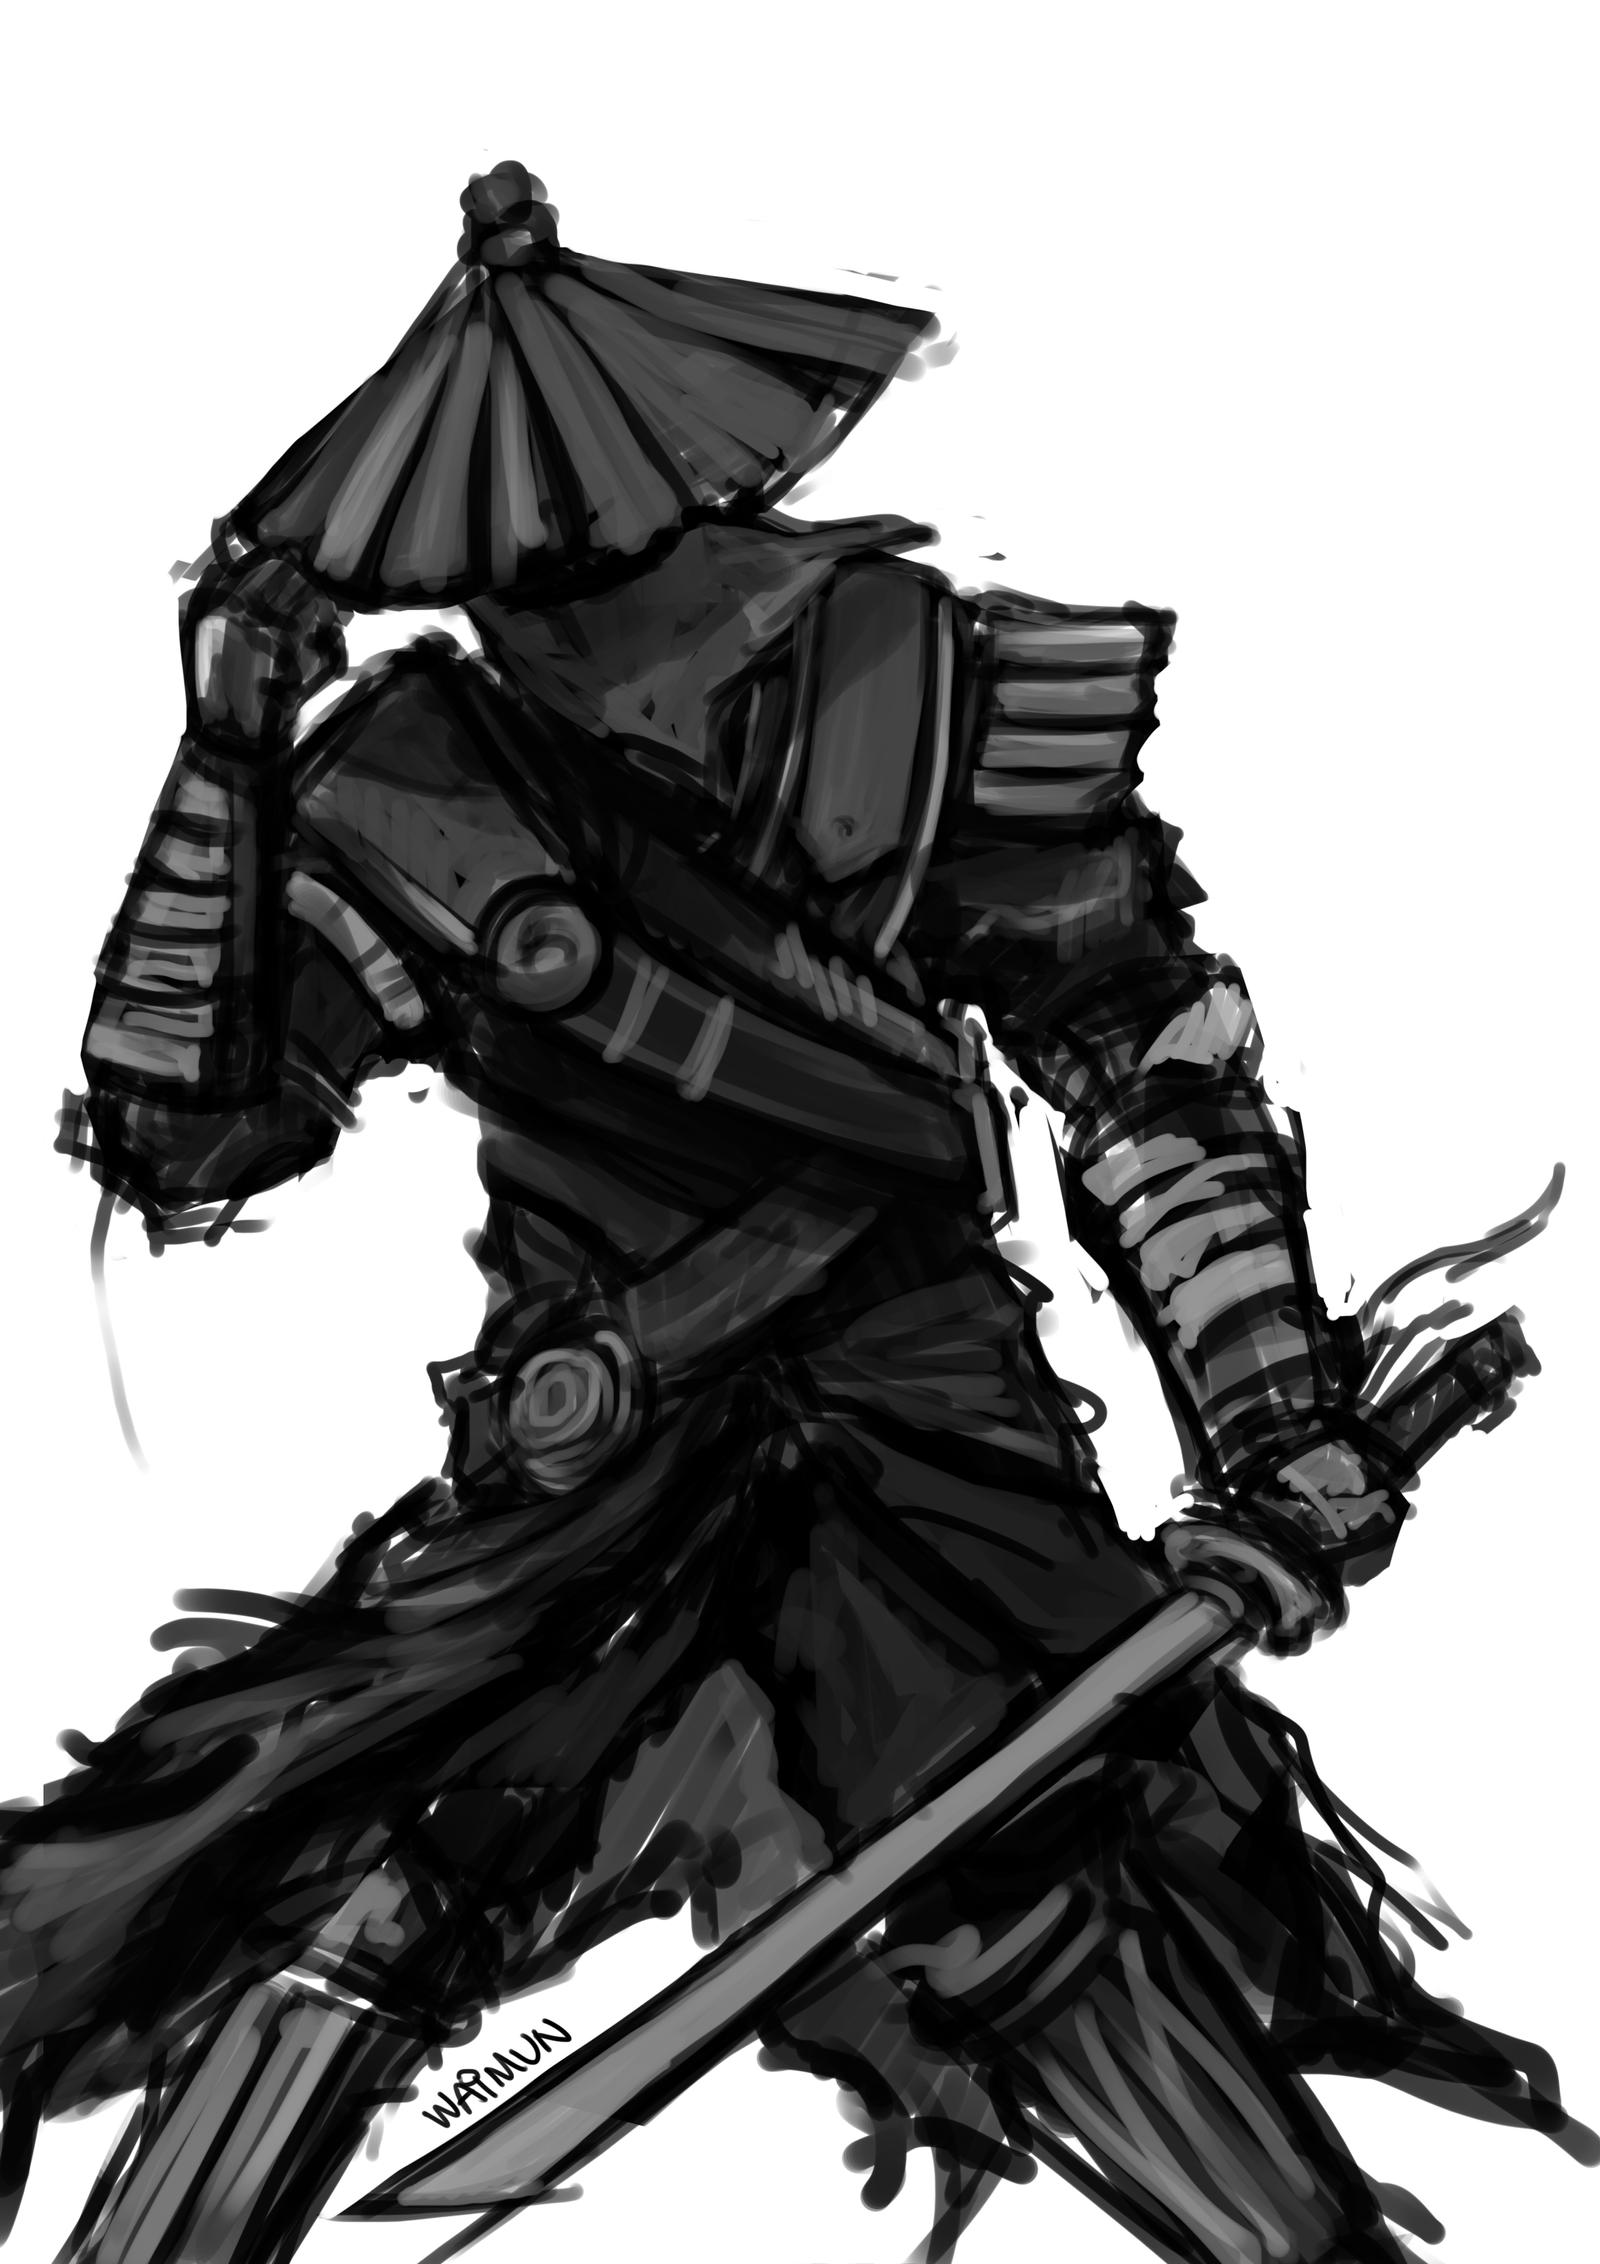 It's just an image of Impertinent Samurai Warrior Drawing